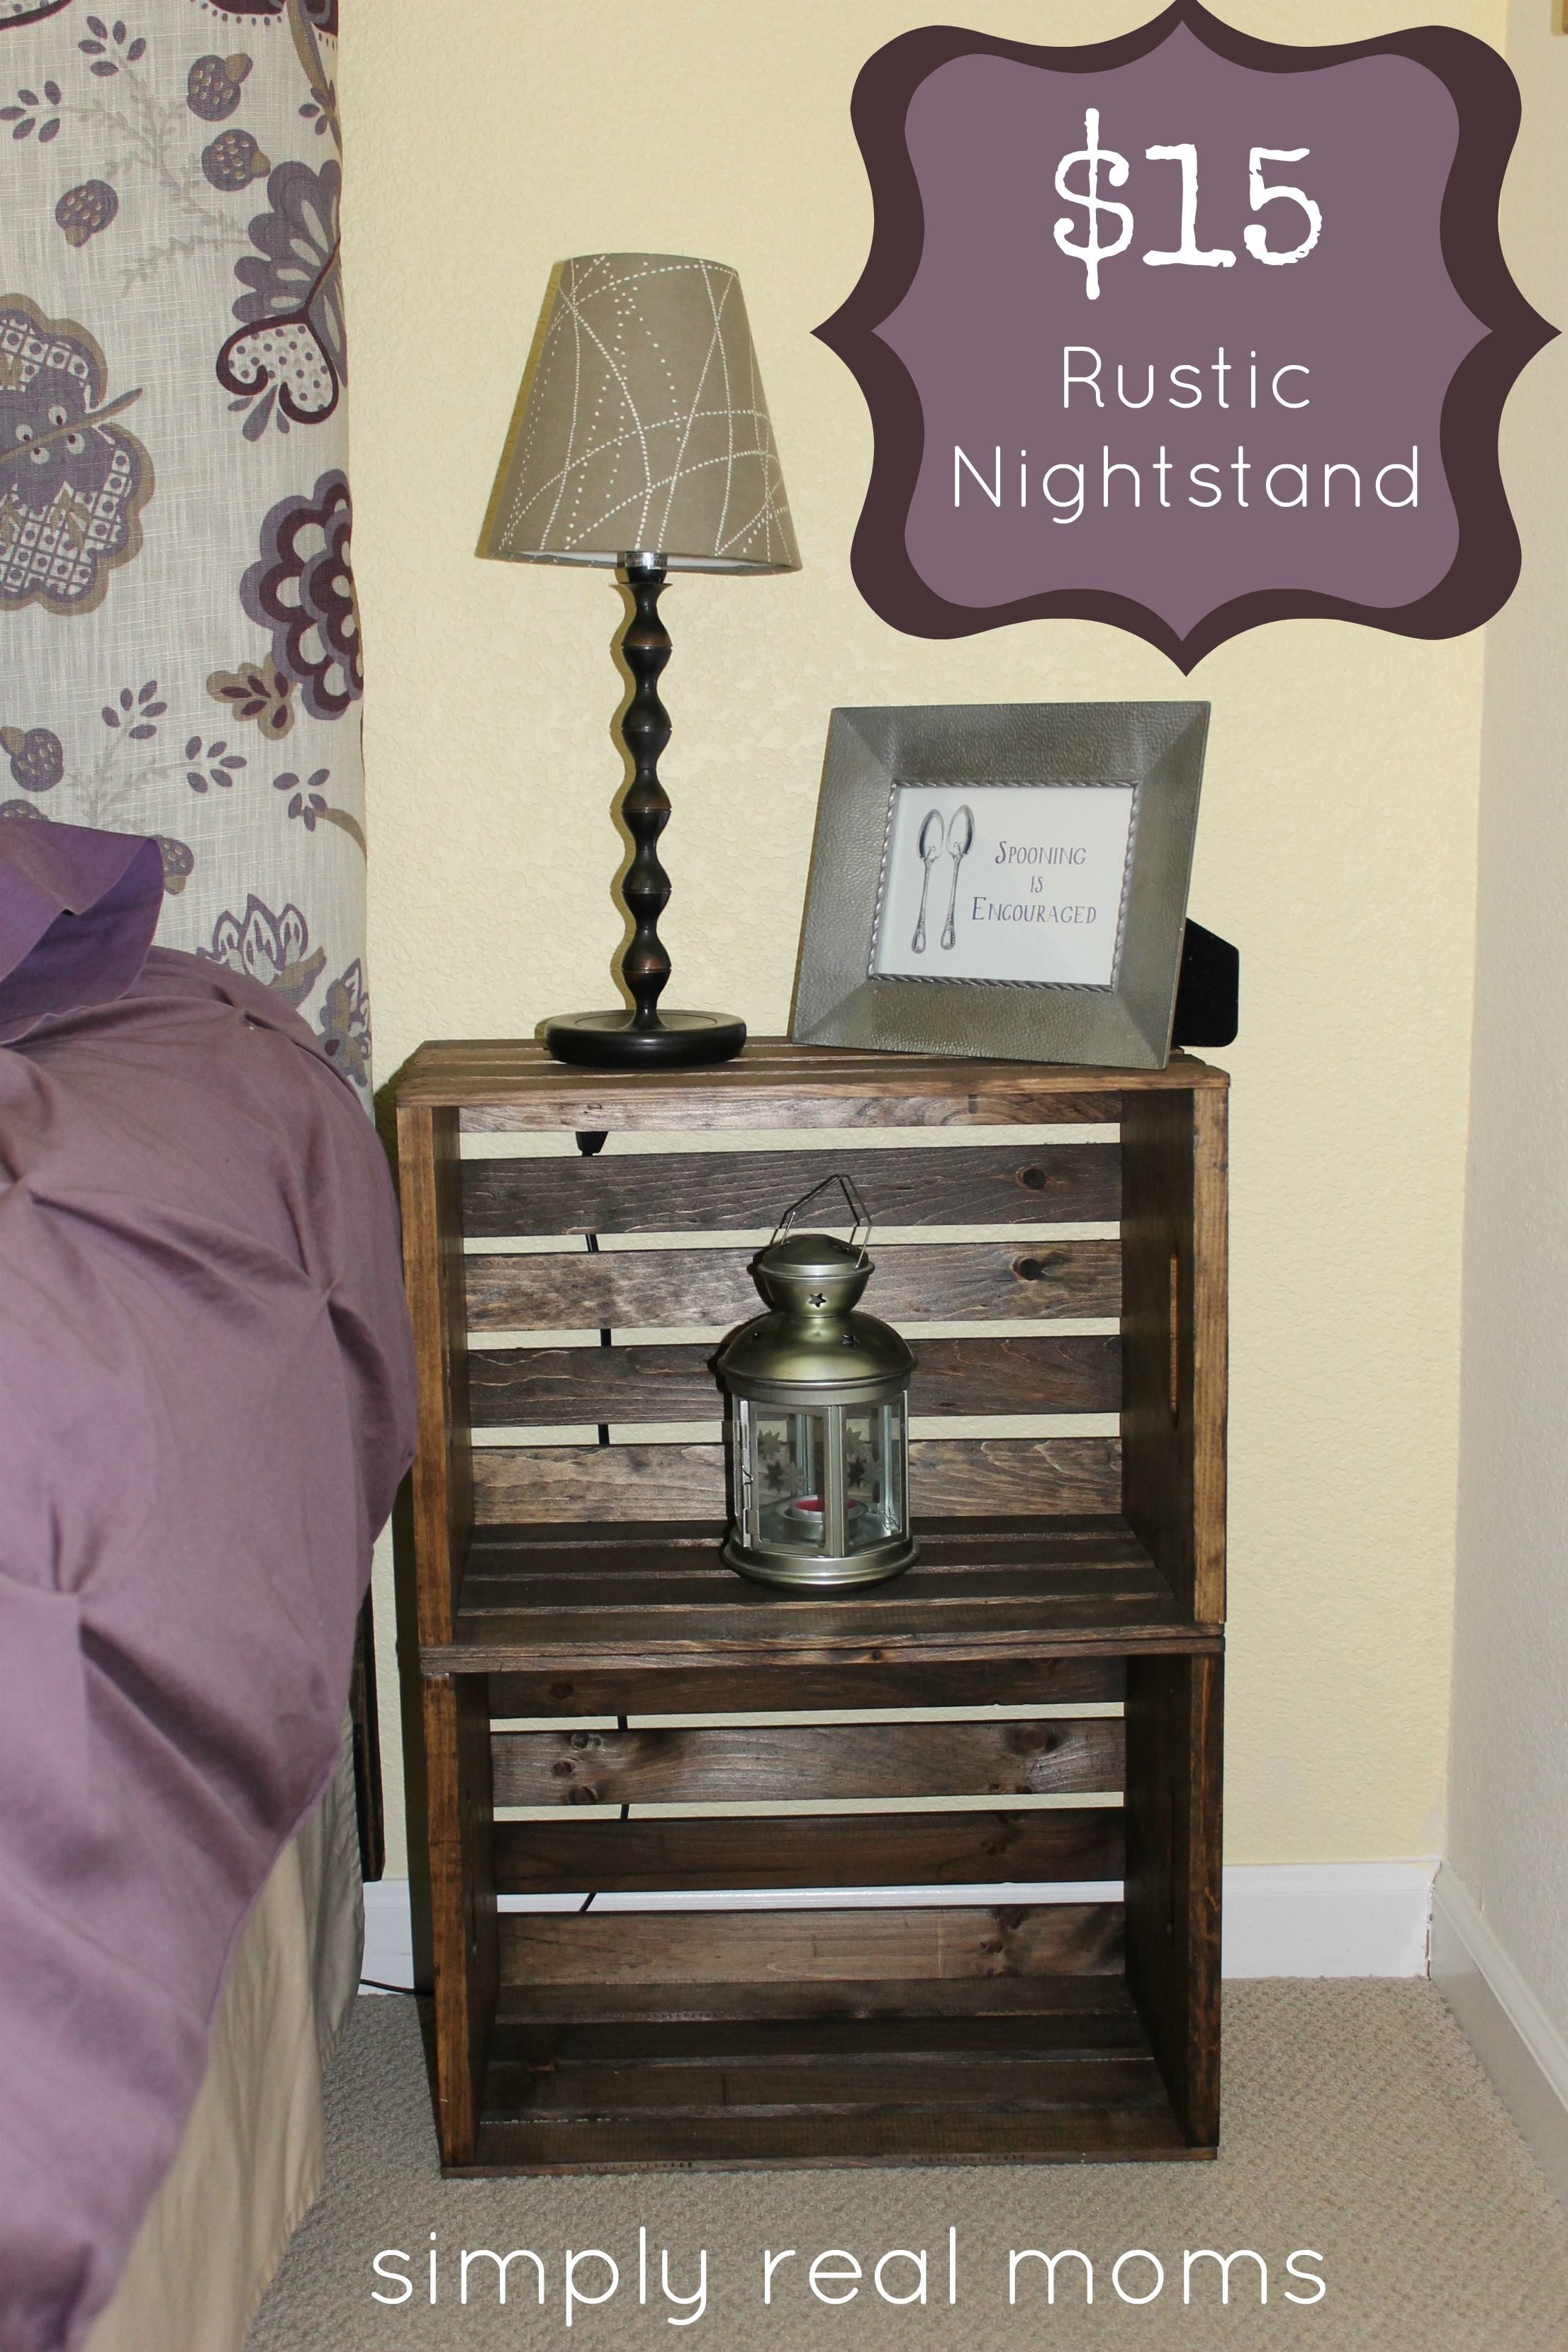 Simply Made Sunday 15 Rustic Nightstand Rustic Nightstand